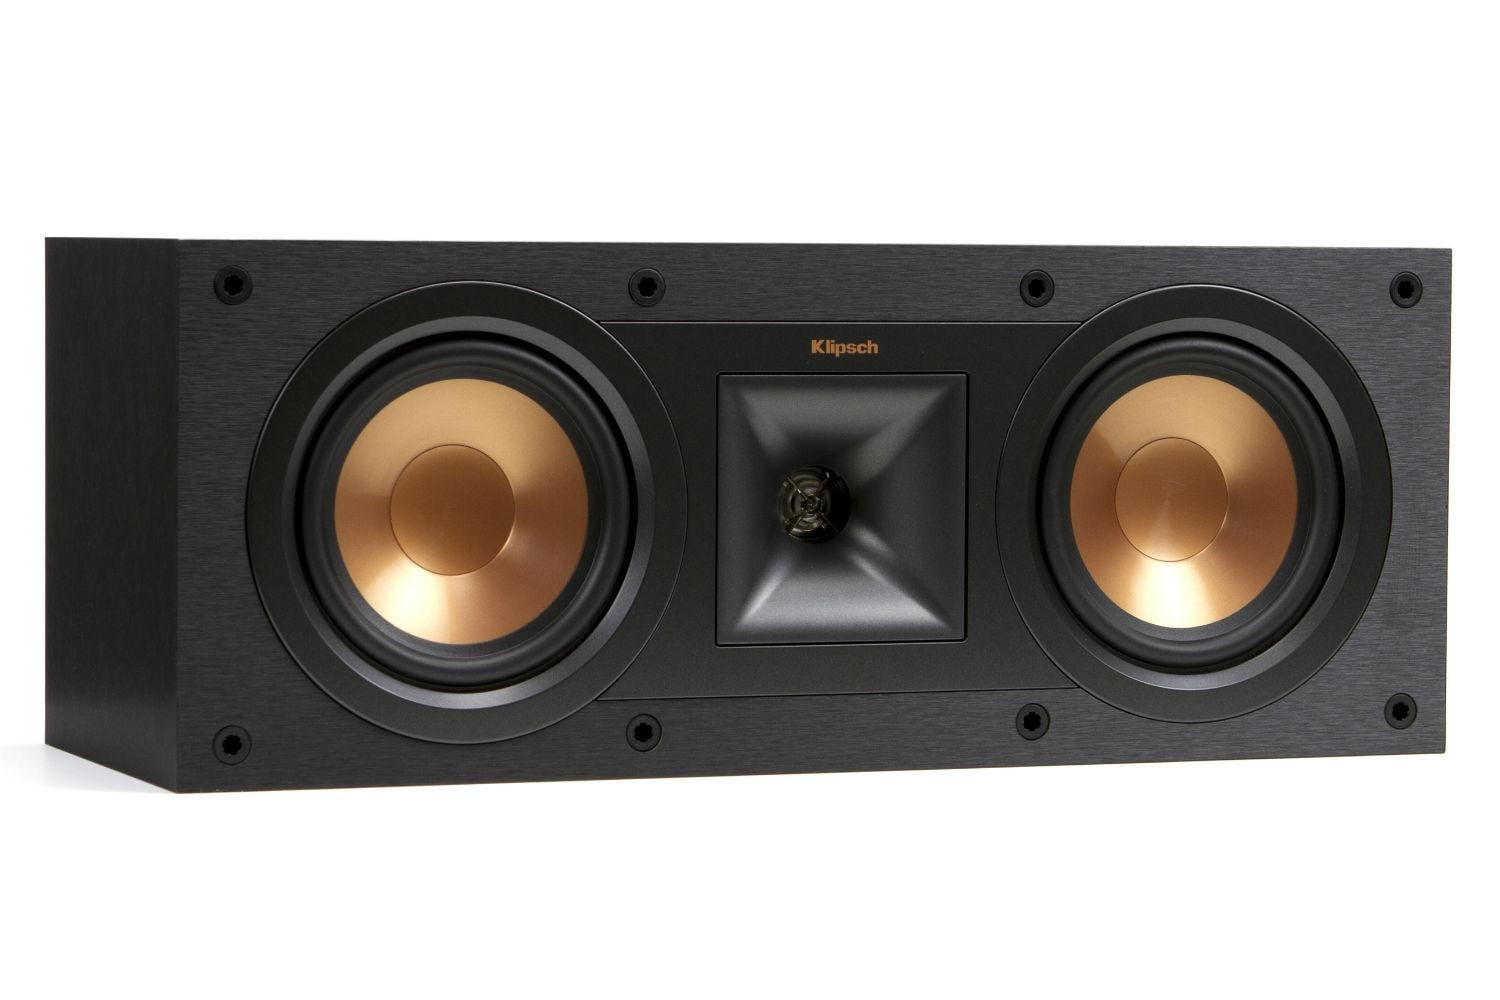 klipsch unveils stockpile new speakers reference home theater line r 25c angle